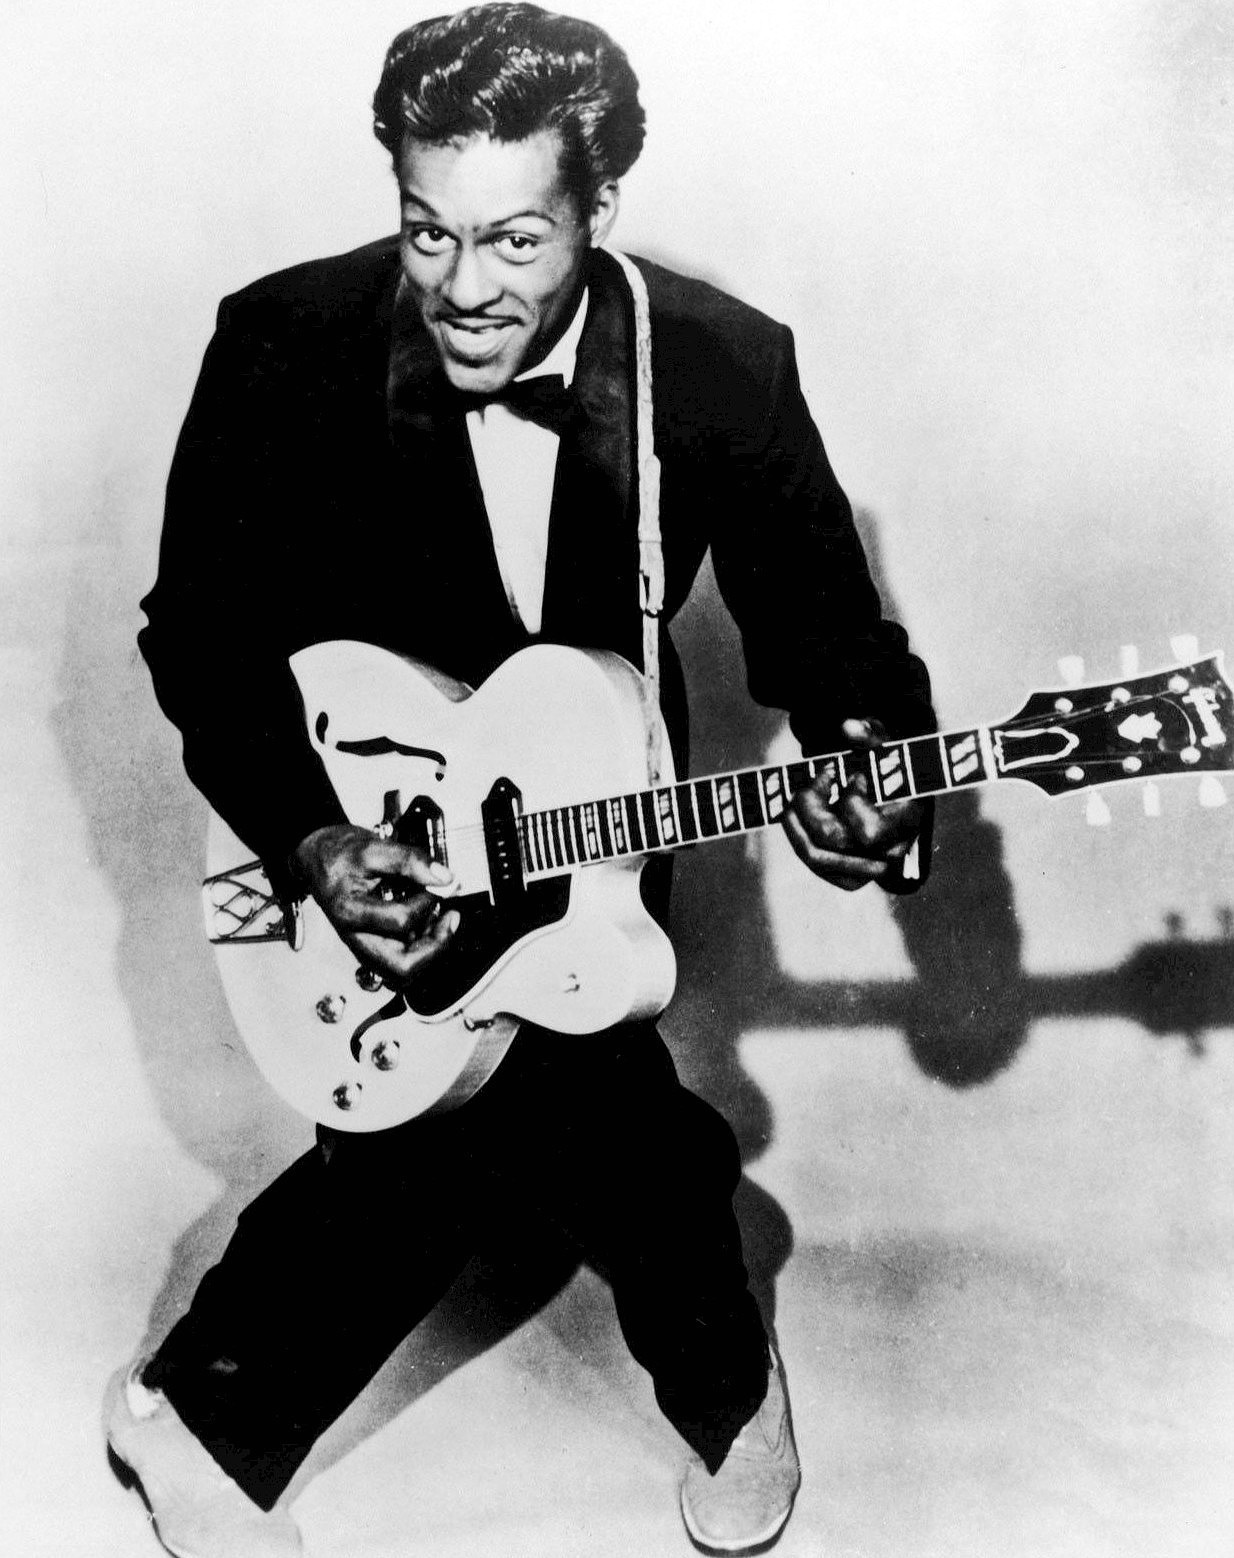 Gent Life: I Need to Get Back to the Year, 1955! (April Edition) feat. Chuck Berry